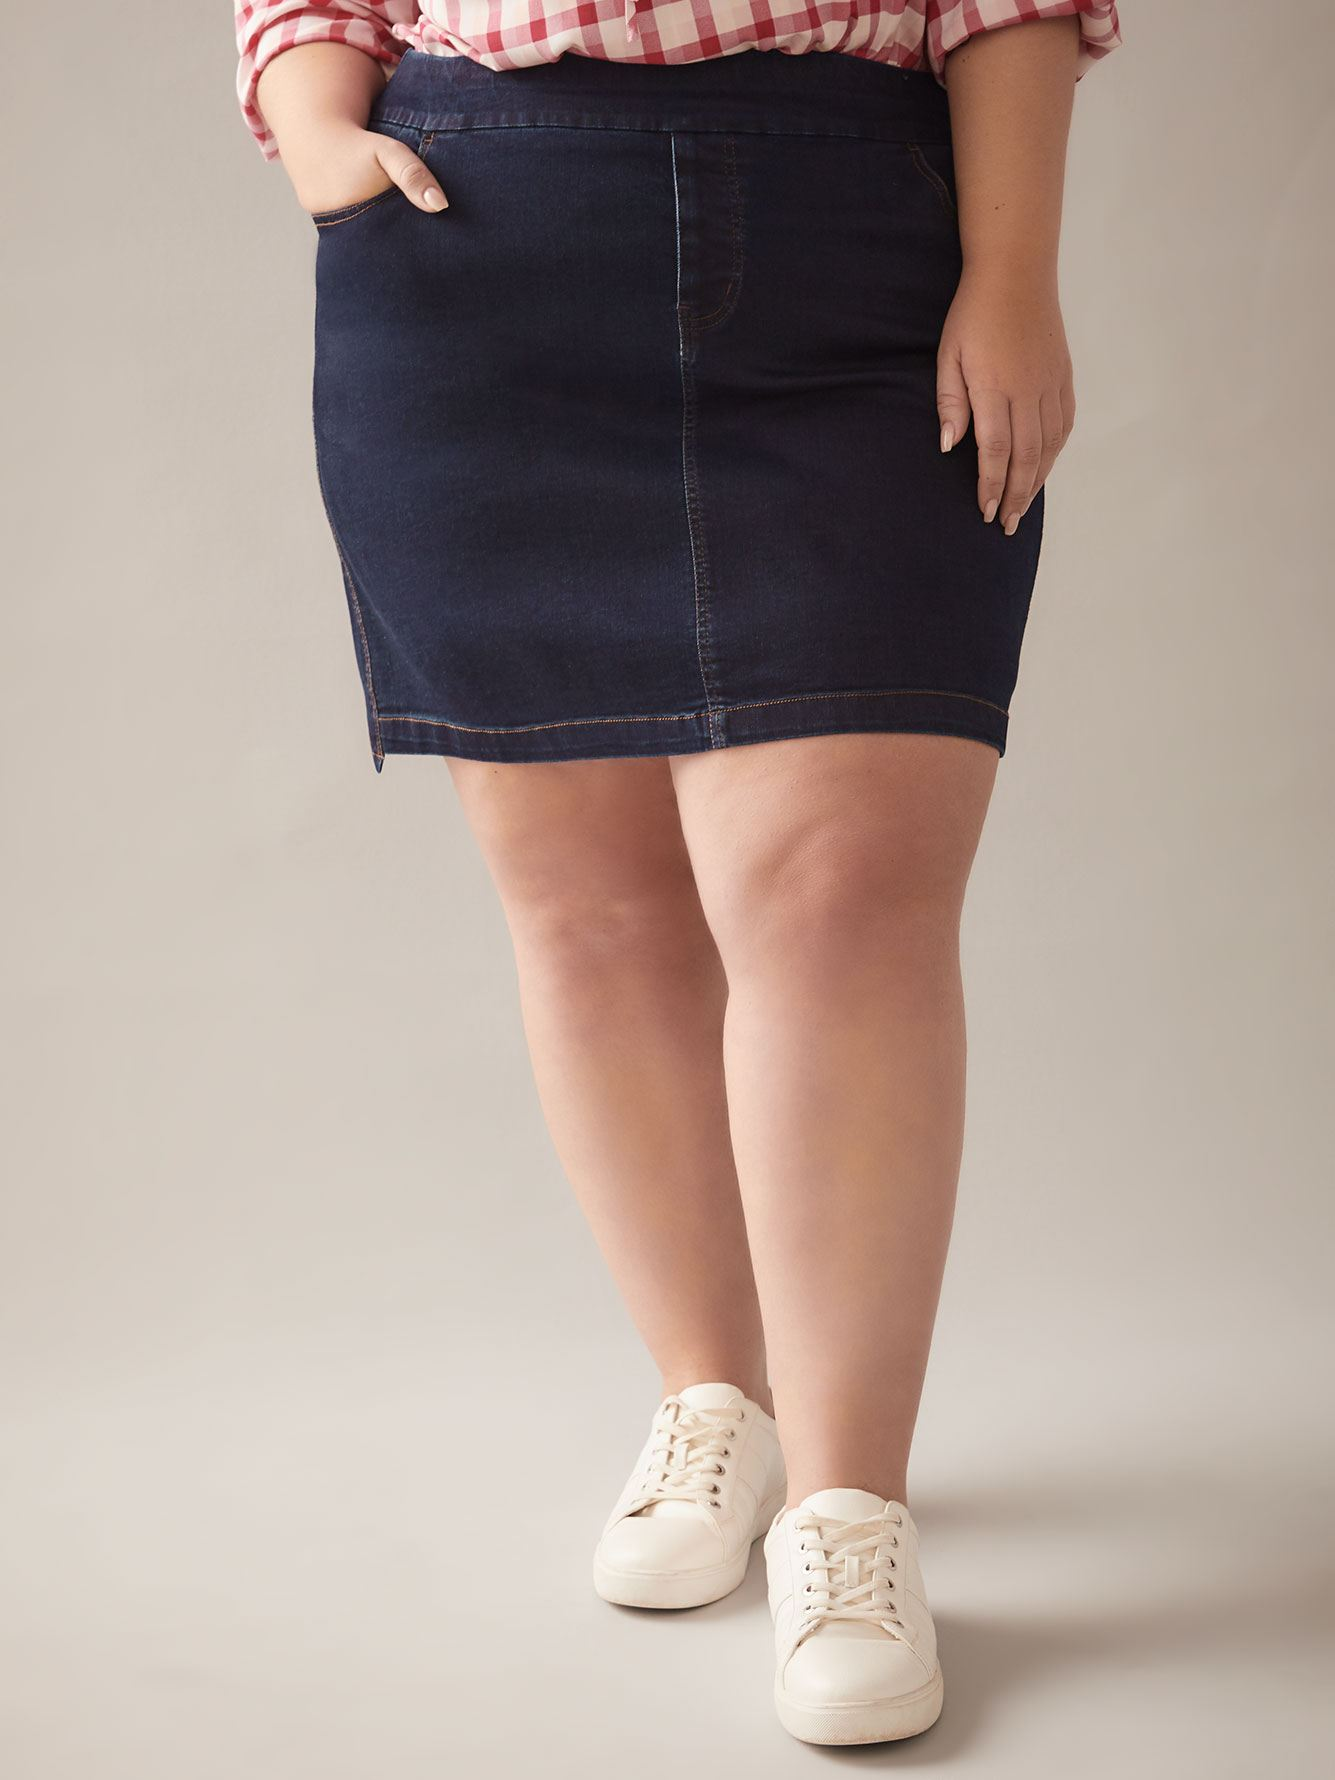 Jupe-short asymétrique en denim - In Every Story